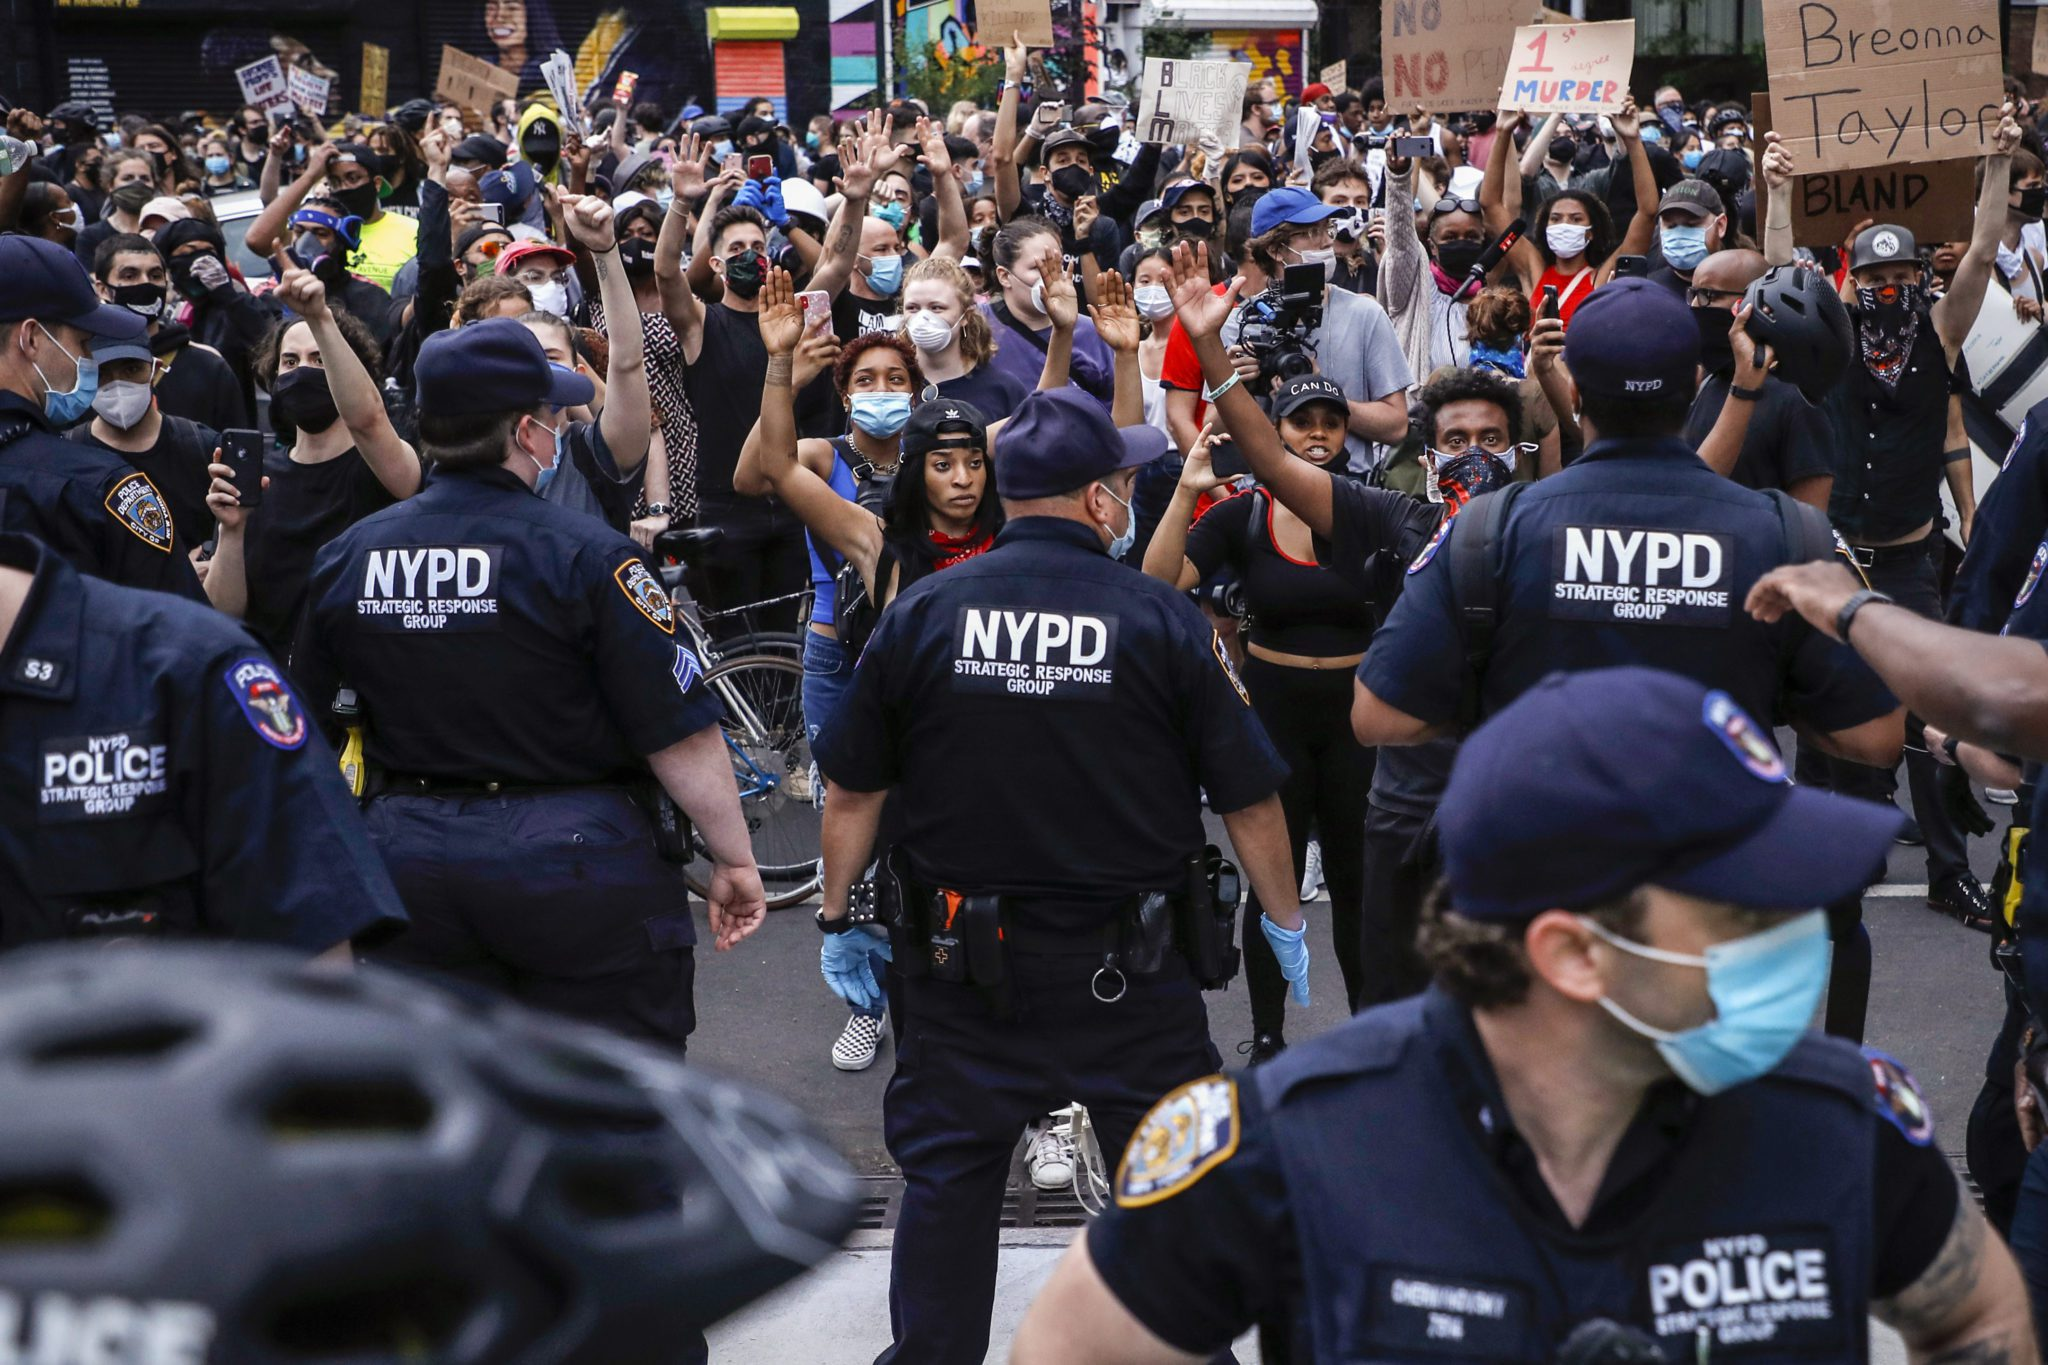 Demonstrators clash with the police in Barclays center, New York, US, on May 29, 2020 during a protest in response to the death of Minneapolis man George Floyd. The video that captured the death of George Floyd implicated the arresting officers sparking days of riots in Minneapolis Minnesota. Governor Tim Waltz (MN) called in the National guard to quell the violent riots, looting and fires. (Photo by John Lamparski/NurPhoto via Getty Images)